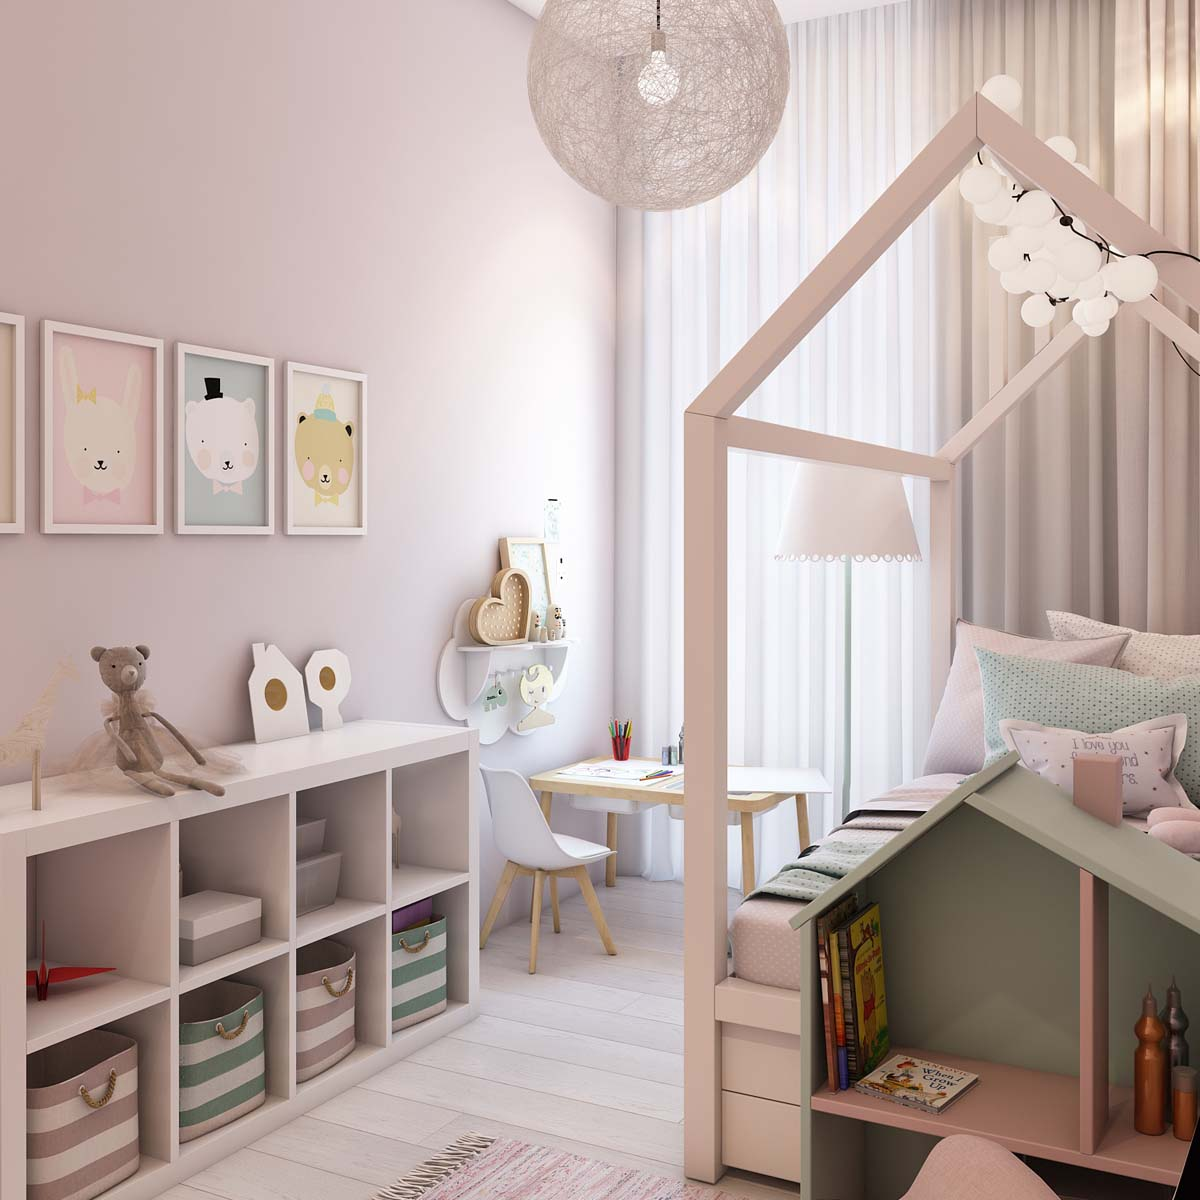 Whimsical Shelves Home Designing A Simple Modern Apartment In Moscow